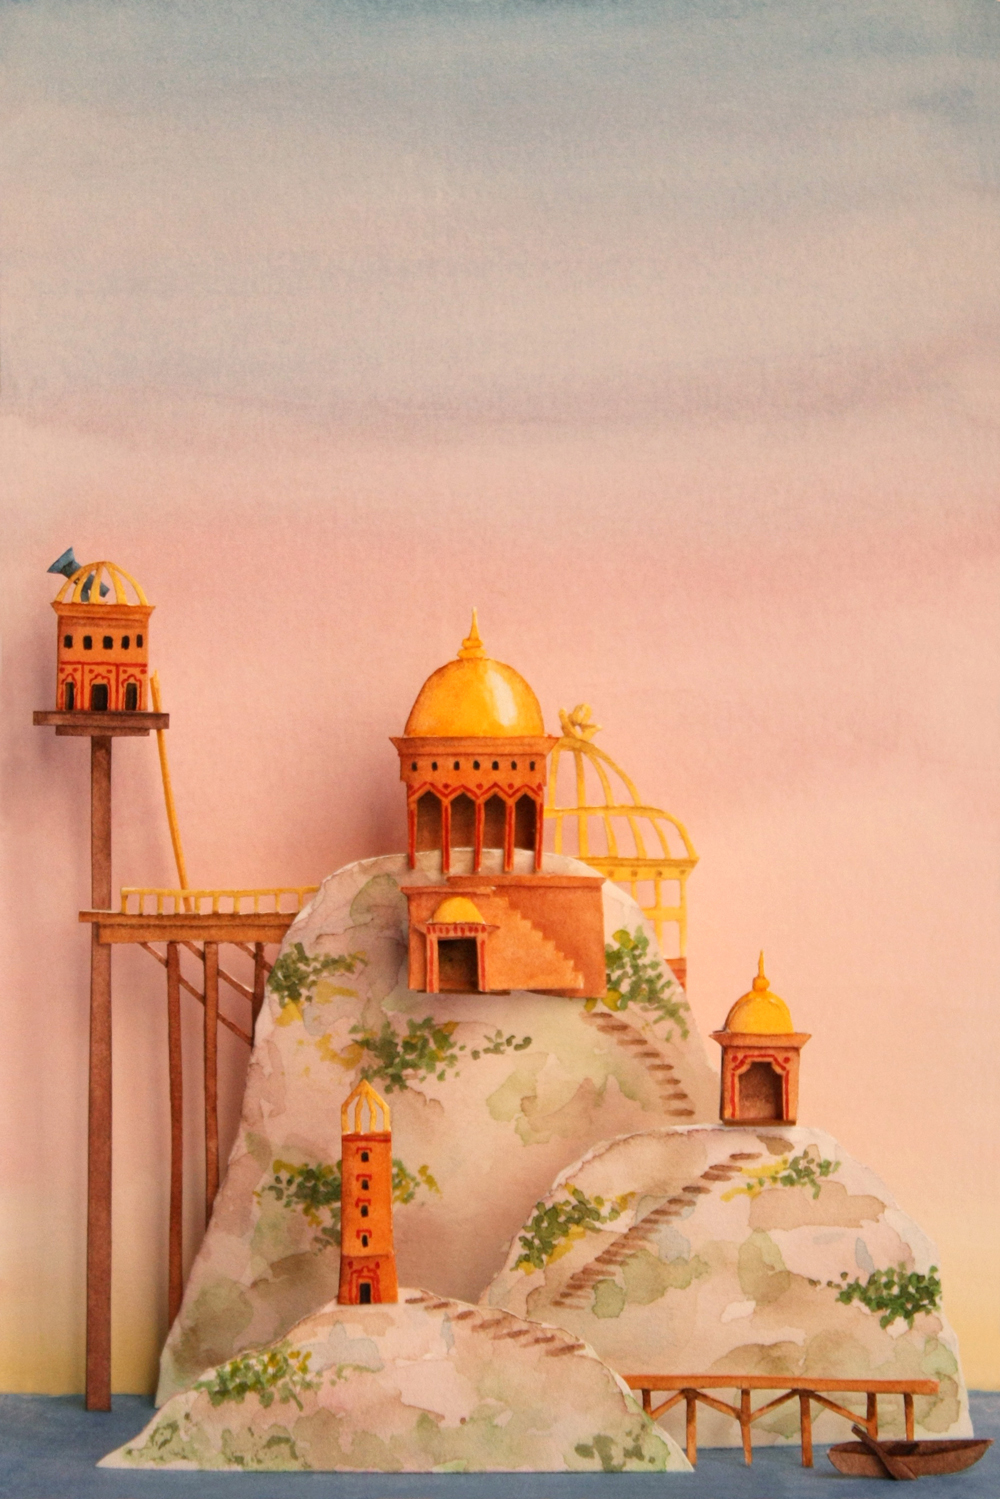 Handpicked: The Charming Dioramas of Mar Cerd�